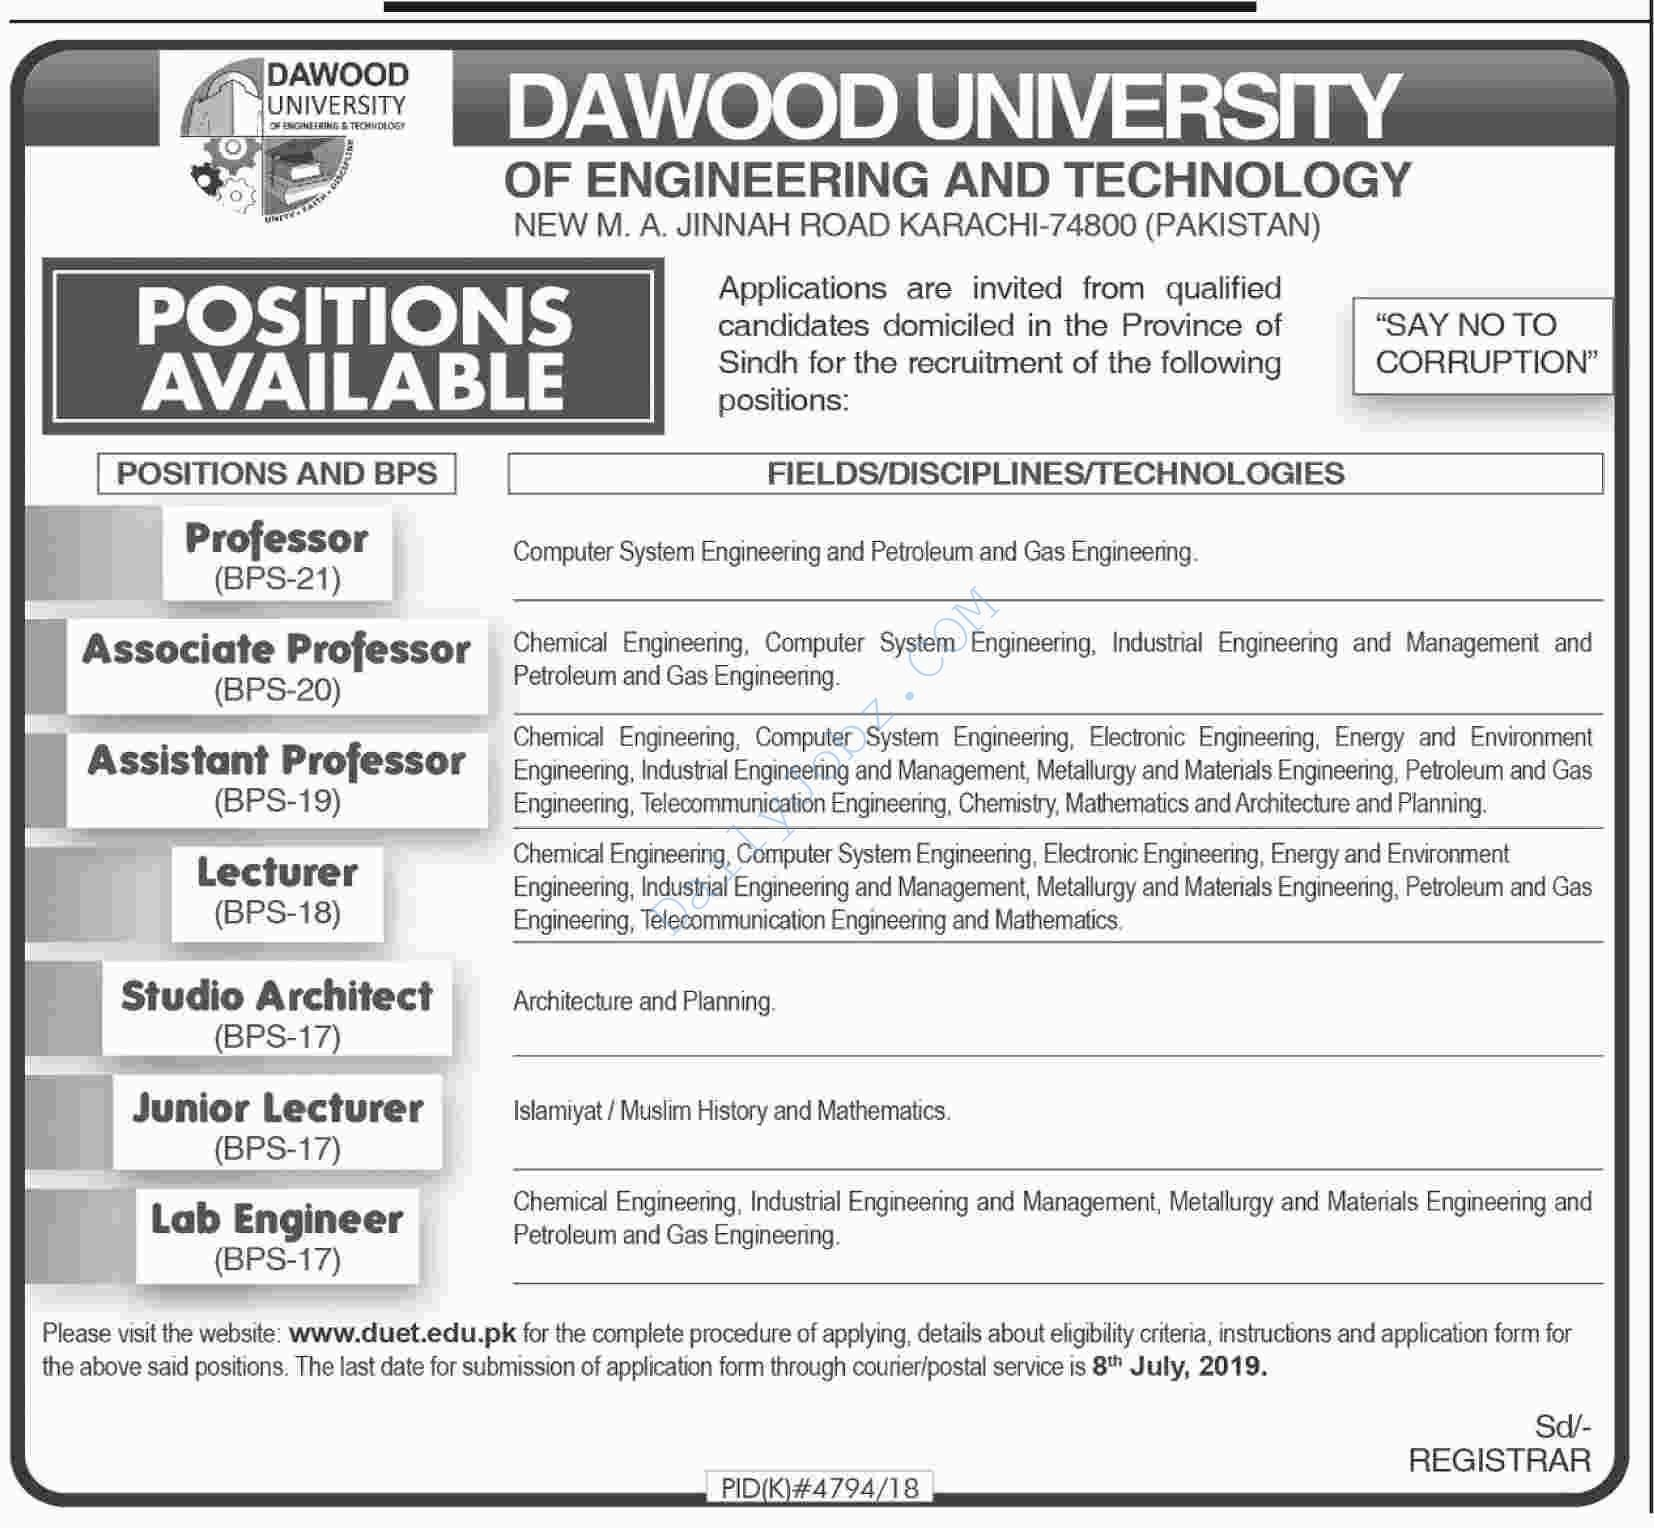 Dawood University Of Engineering And Technology Karachi Lab